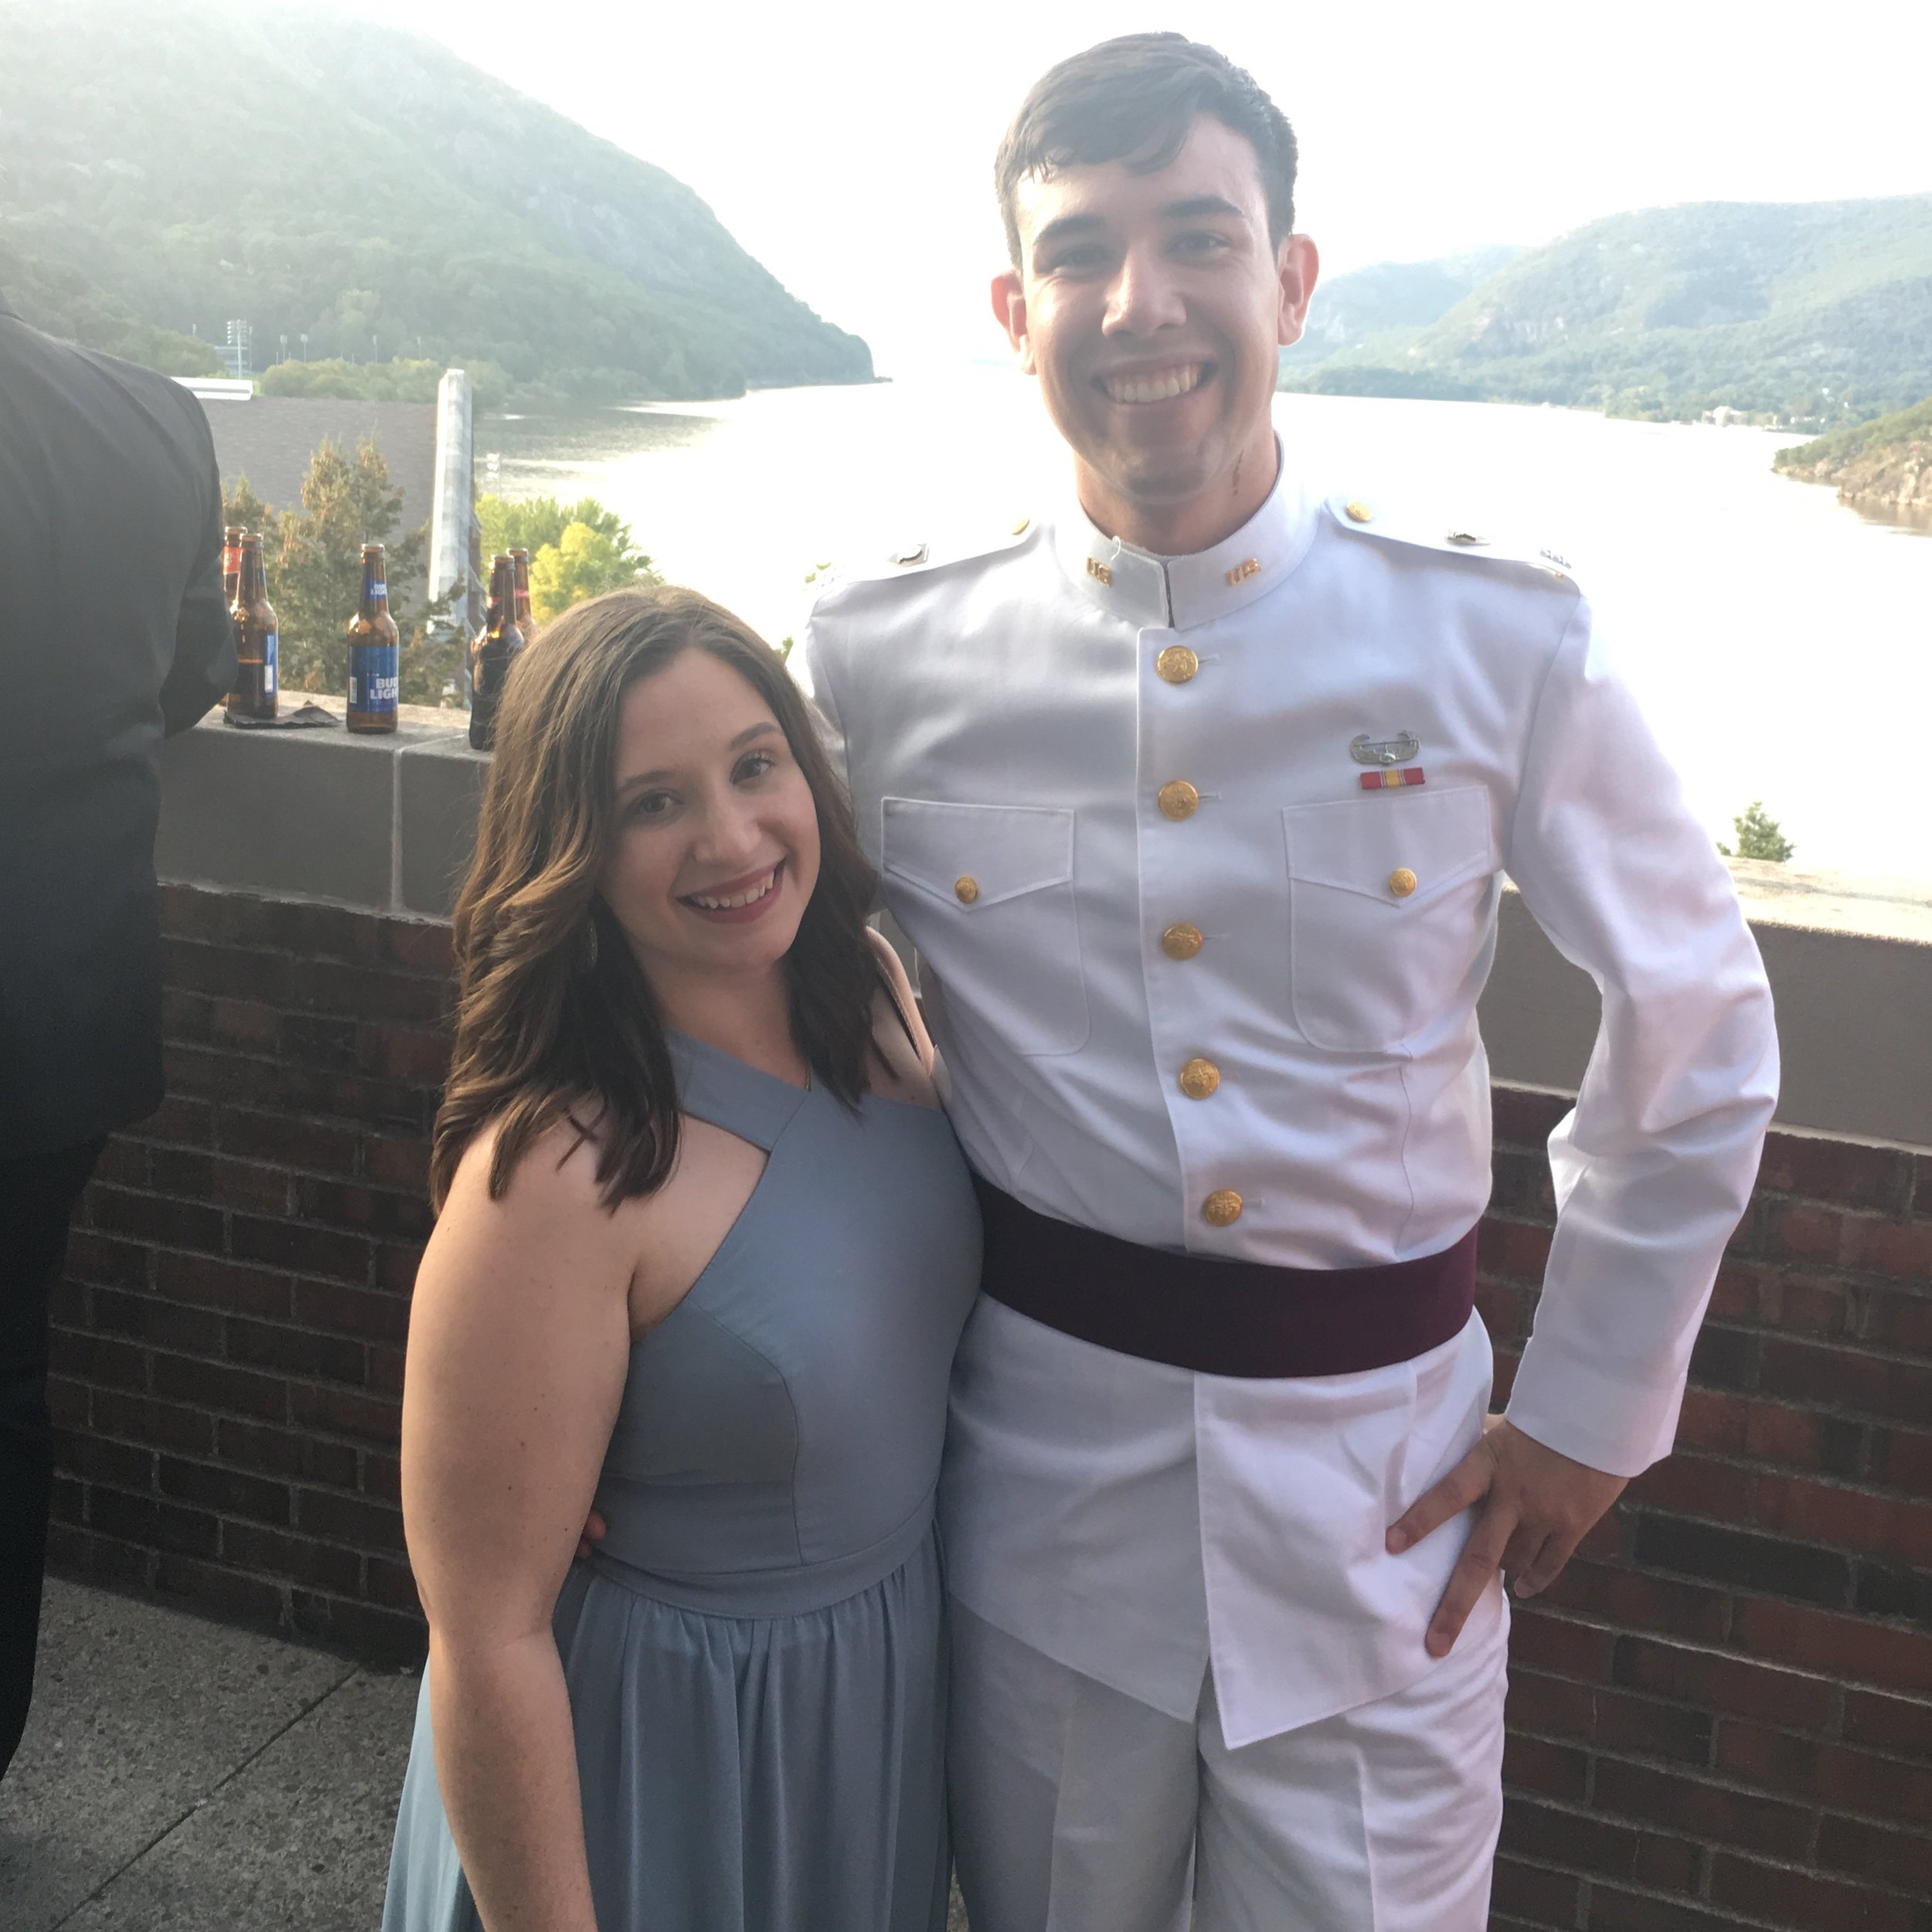 lulus dress review, military formal outfits, military formal gowns